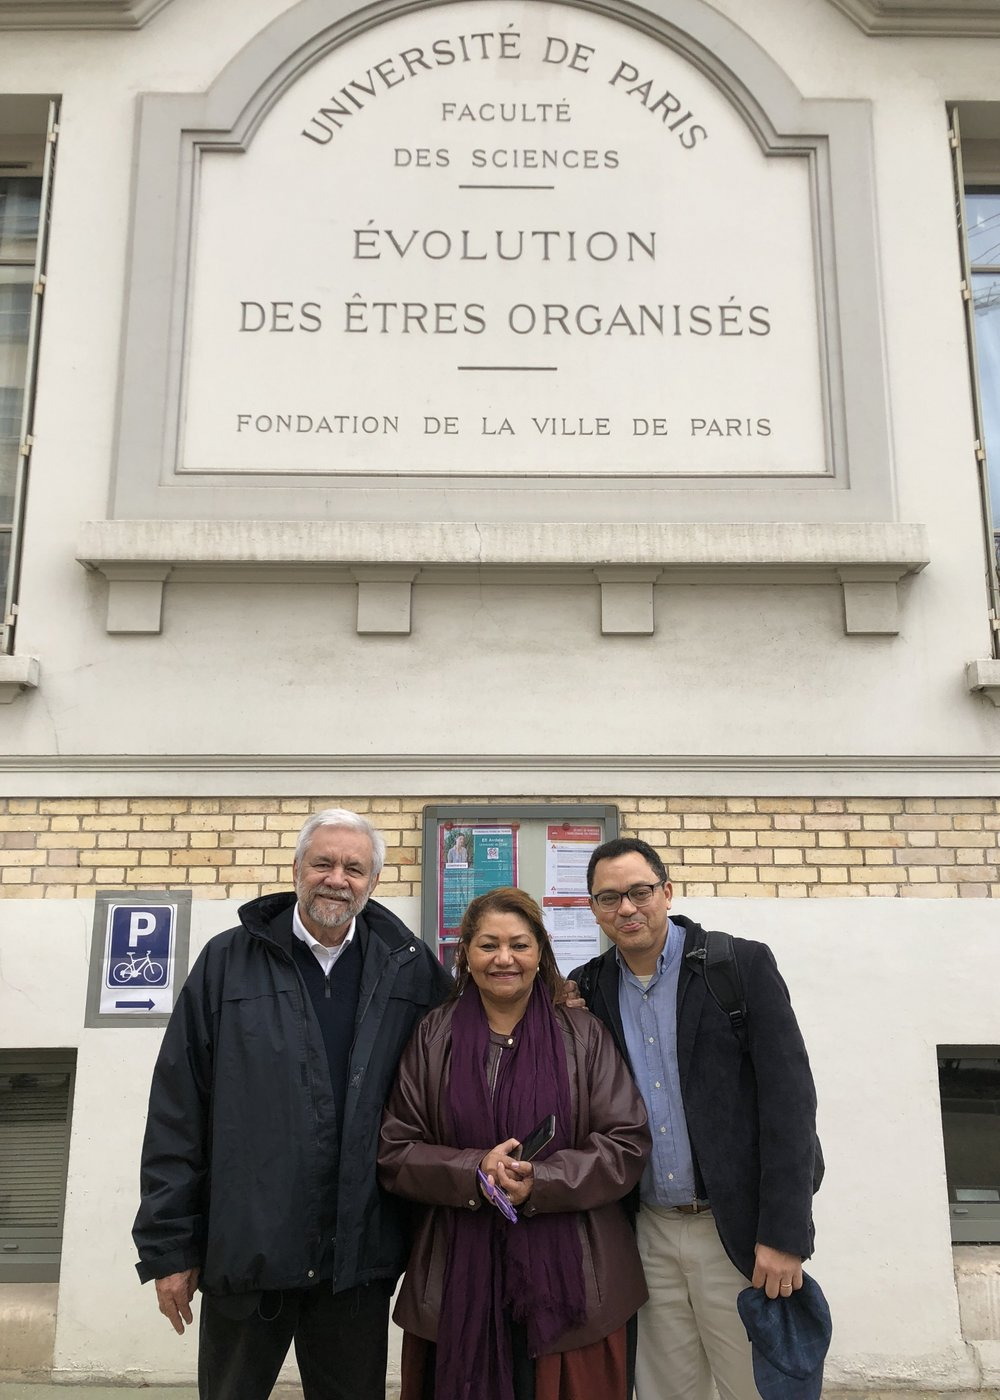 Marcus Barros, Marilene Corrêa and Marcos Colón in the event in Paris